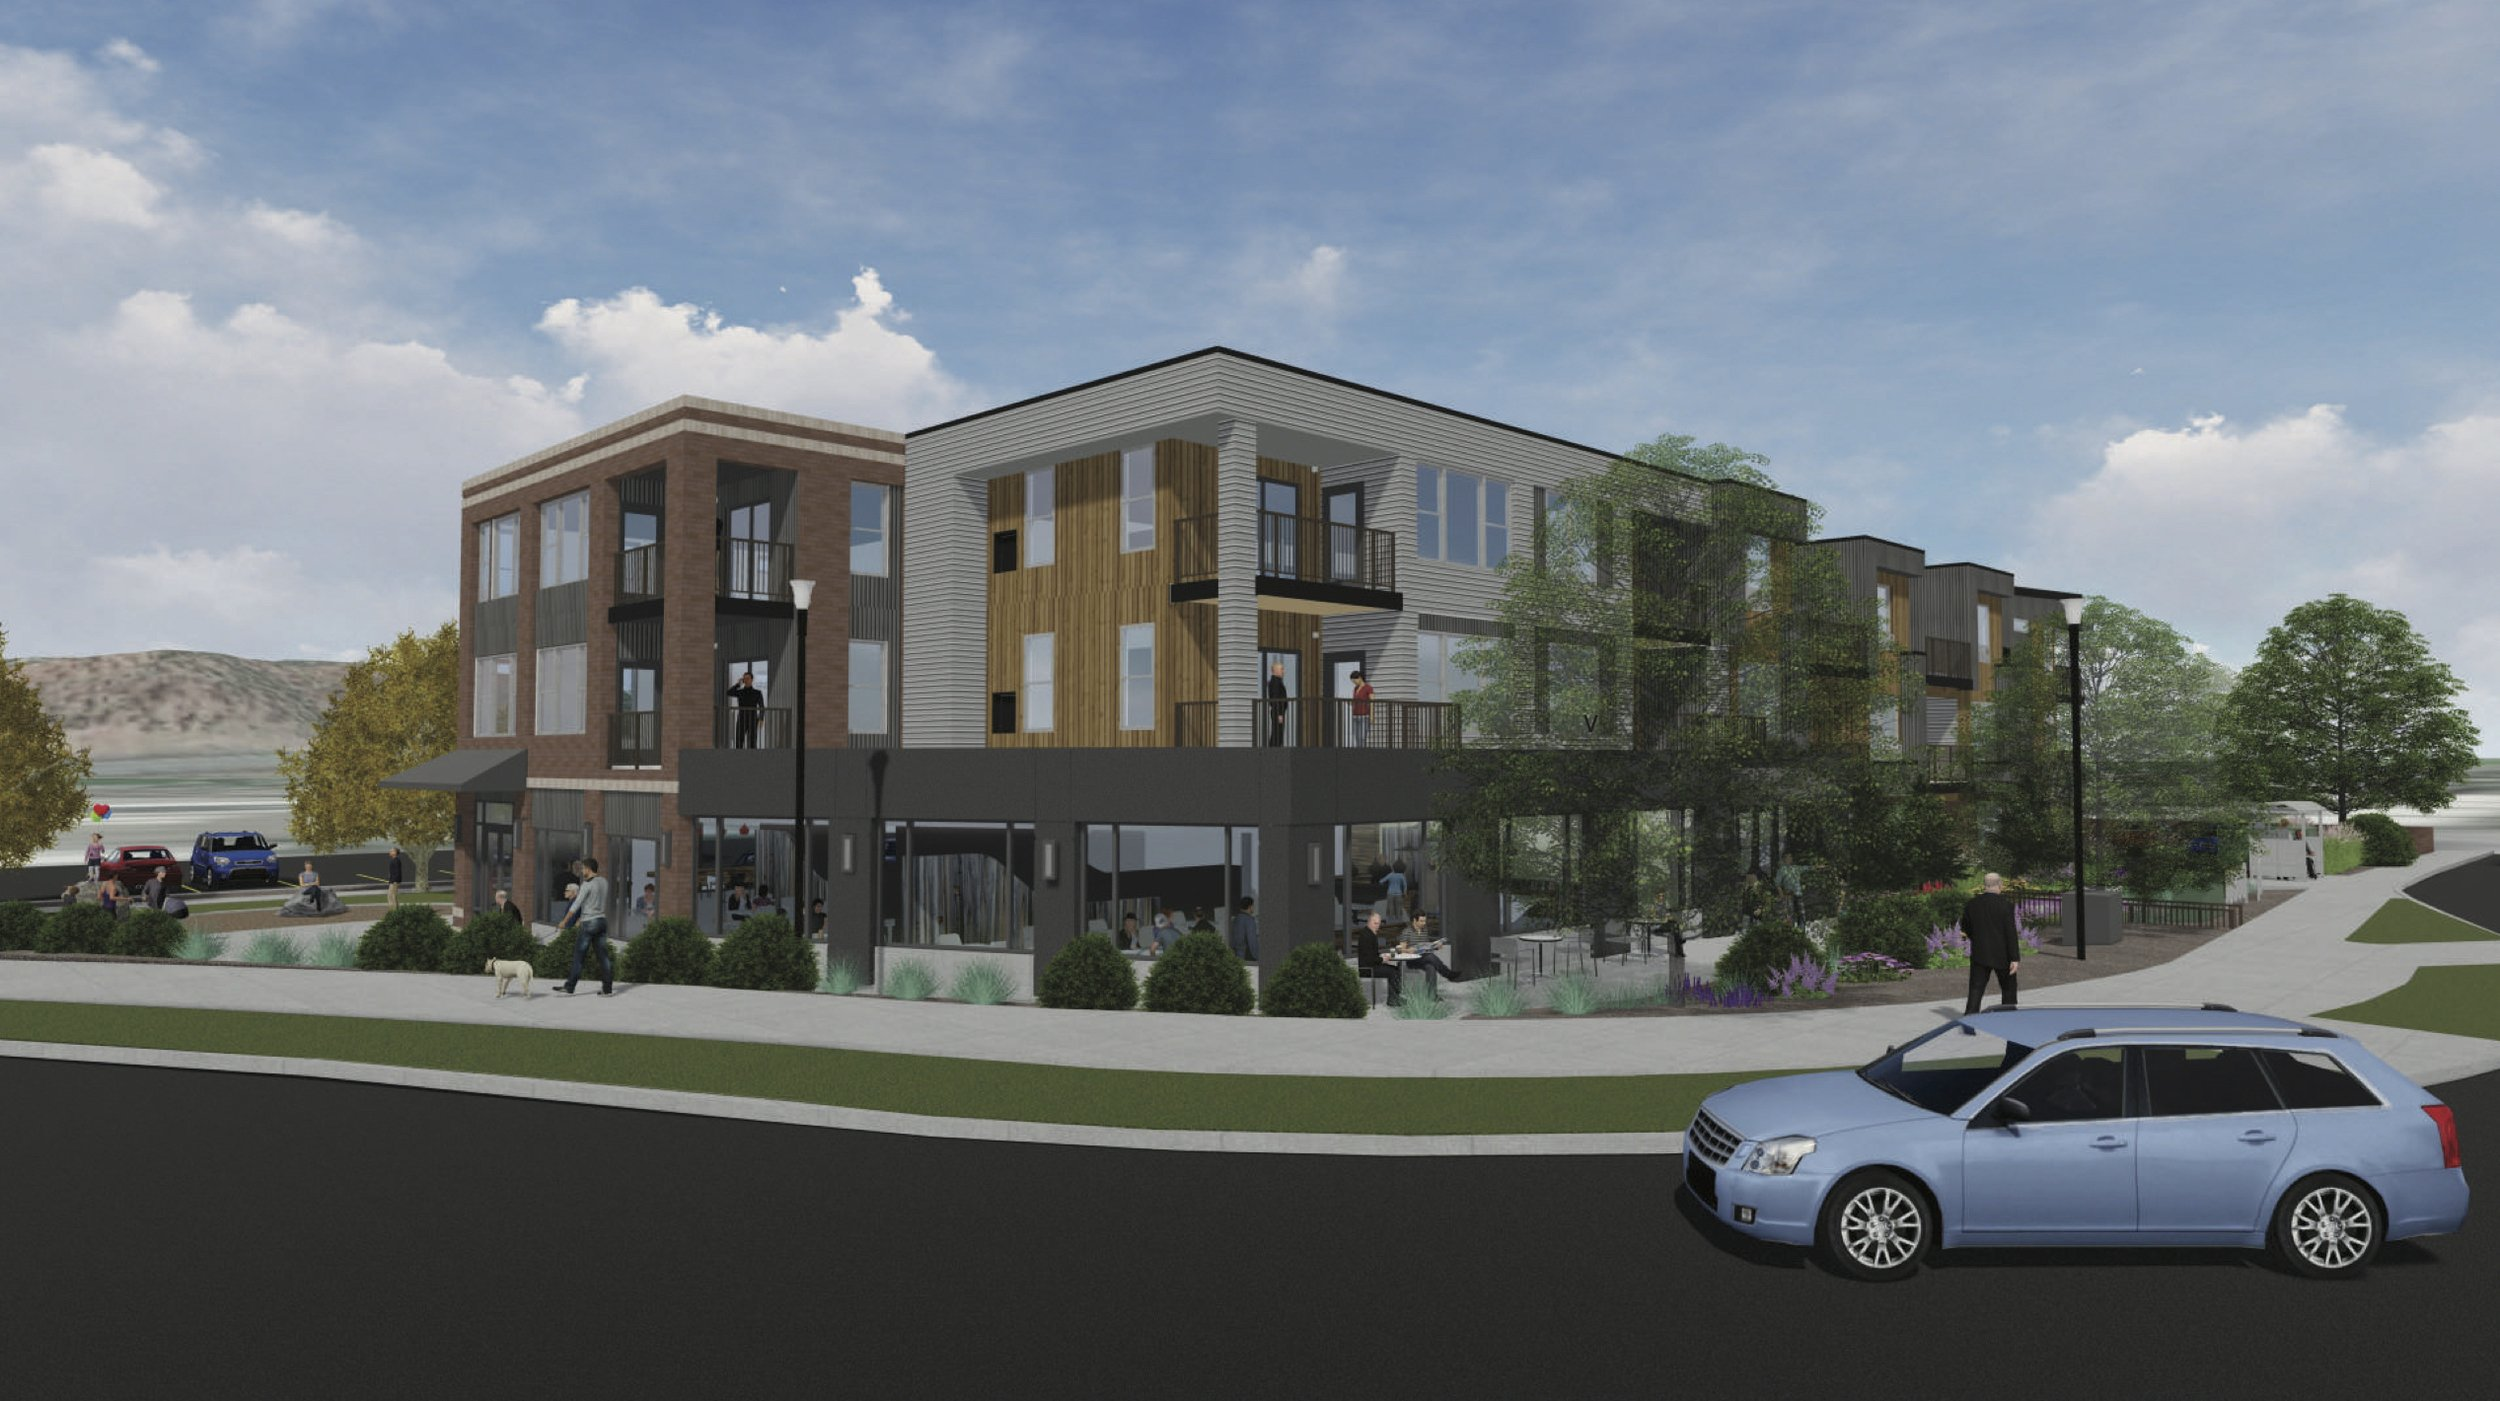 This rendering of 1201 Main St. portrays a new building currently under construction next to the roundabout. Courtesy image.